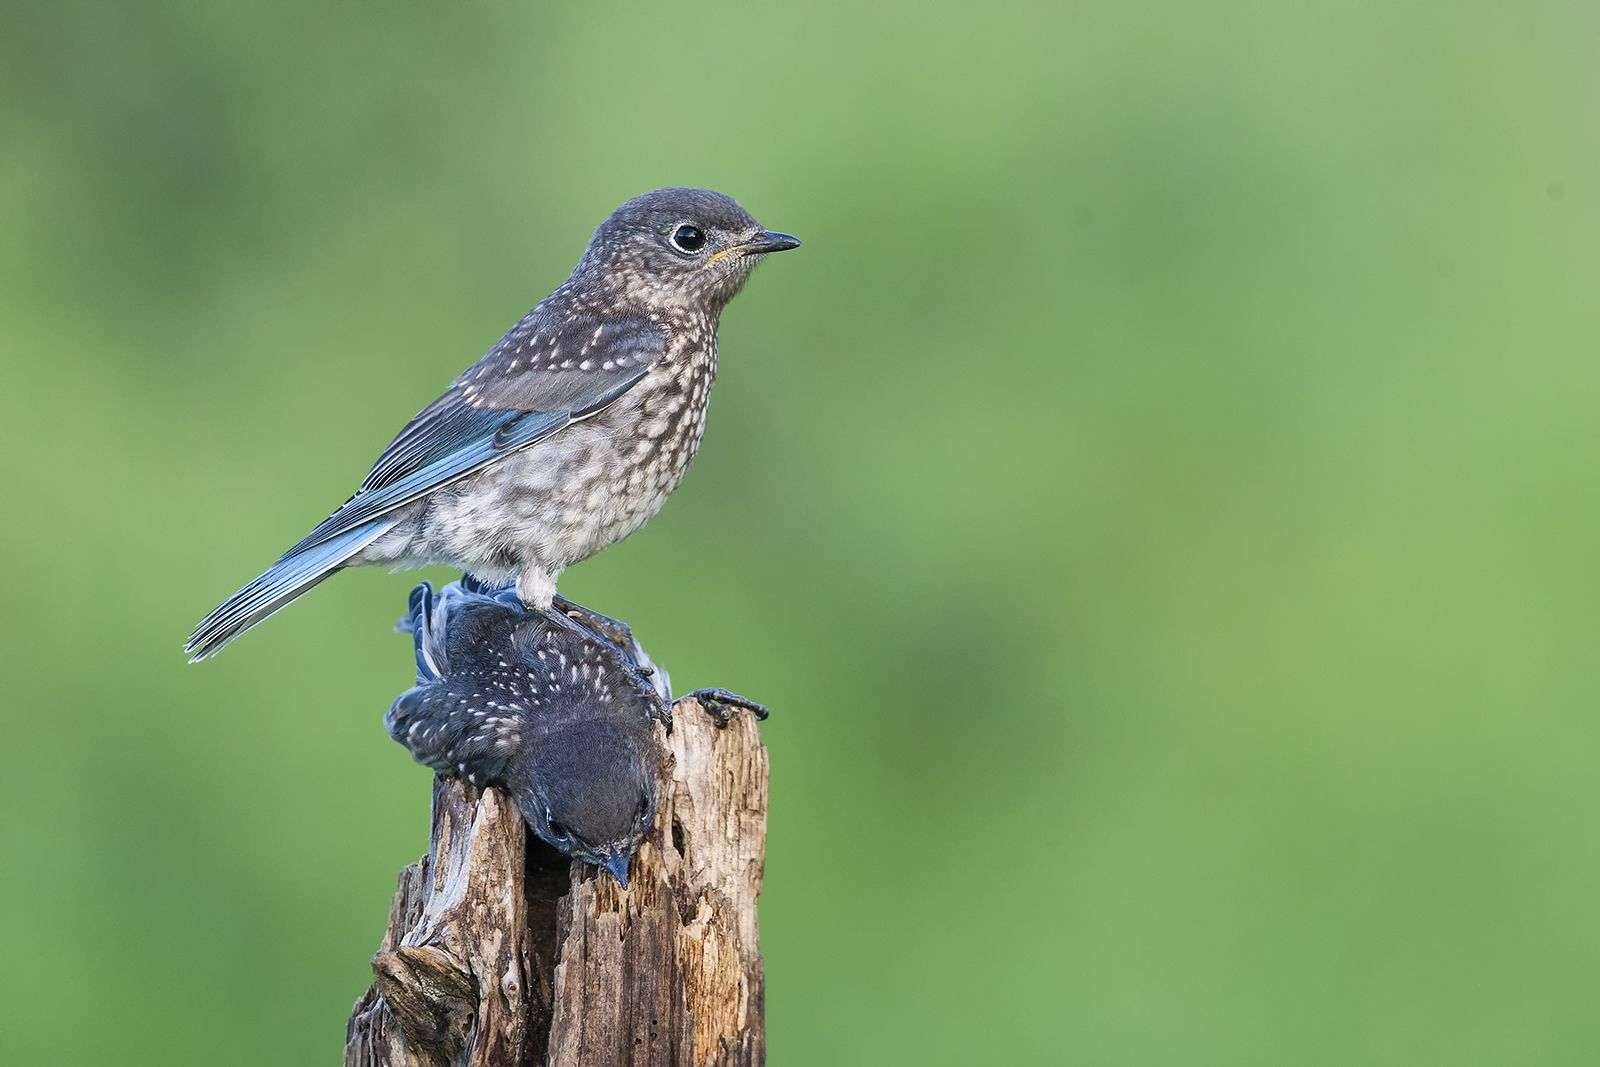 Two recently fledged Eastern Bluebirds were each trying to perch on the same post in…